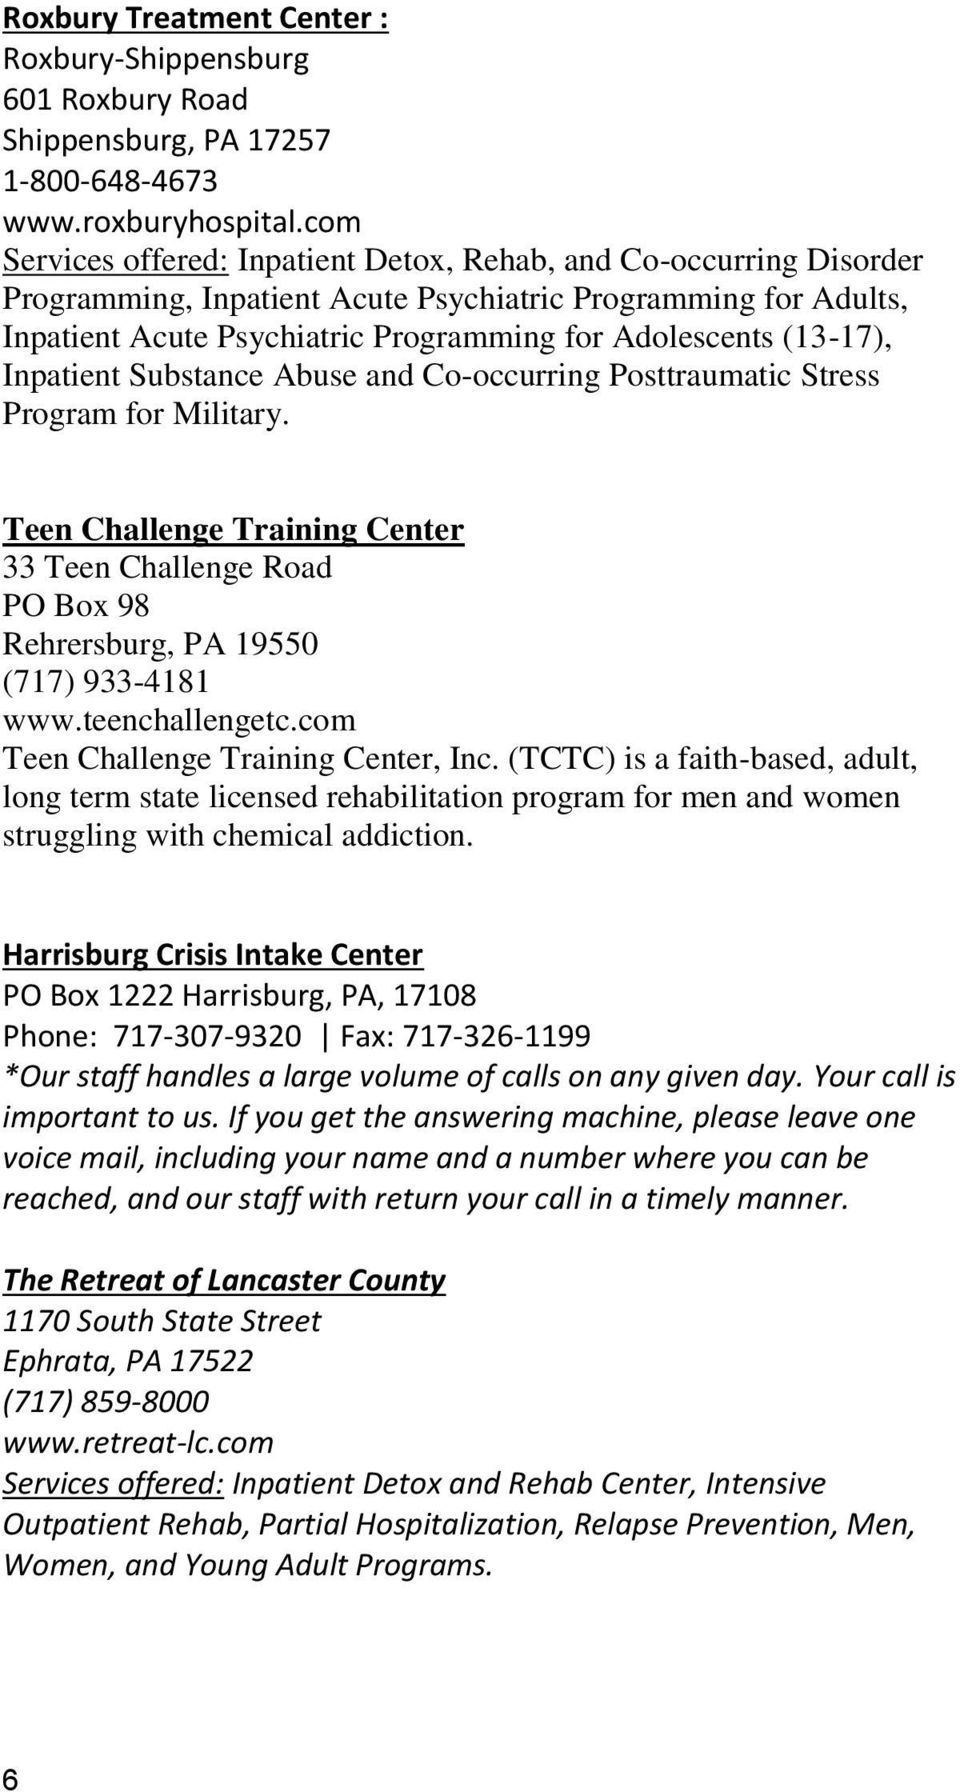 (13-17), Inpatient Substance Abuse and Co-occurring Posttraumatic Stress Program for Military. Teen Challenge Training Center 33 Teen Challenge Road PO Box 98 Rehrersburg, PA 19550 (717) 933-4181 www.